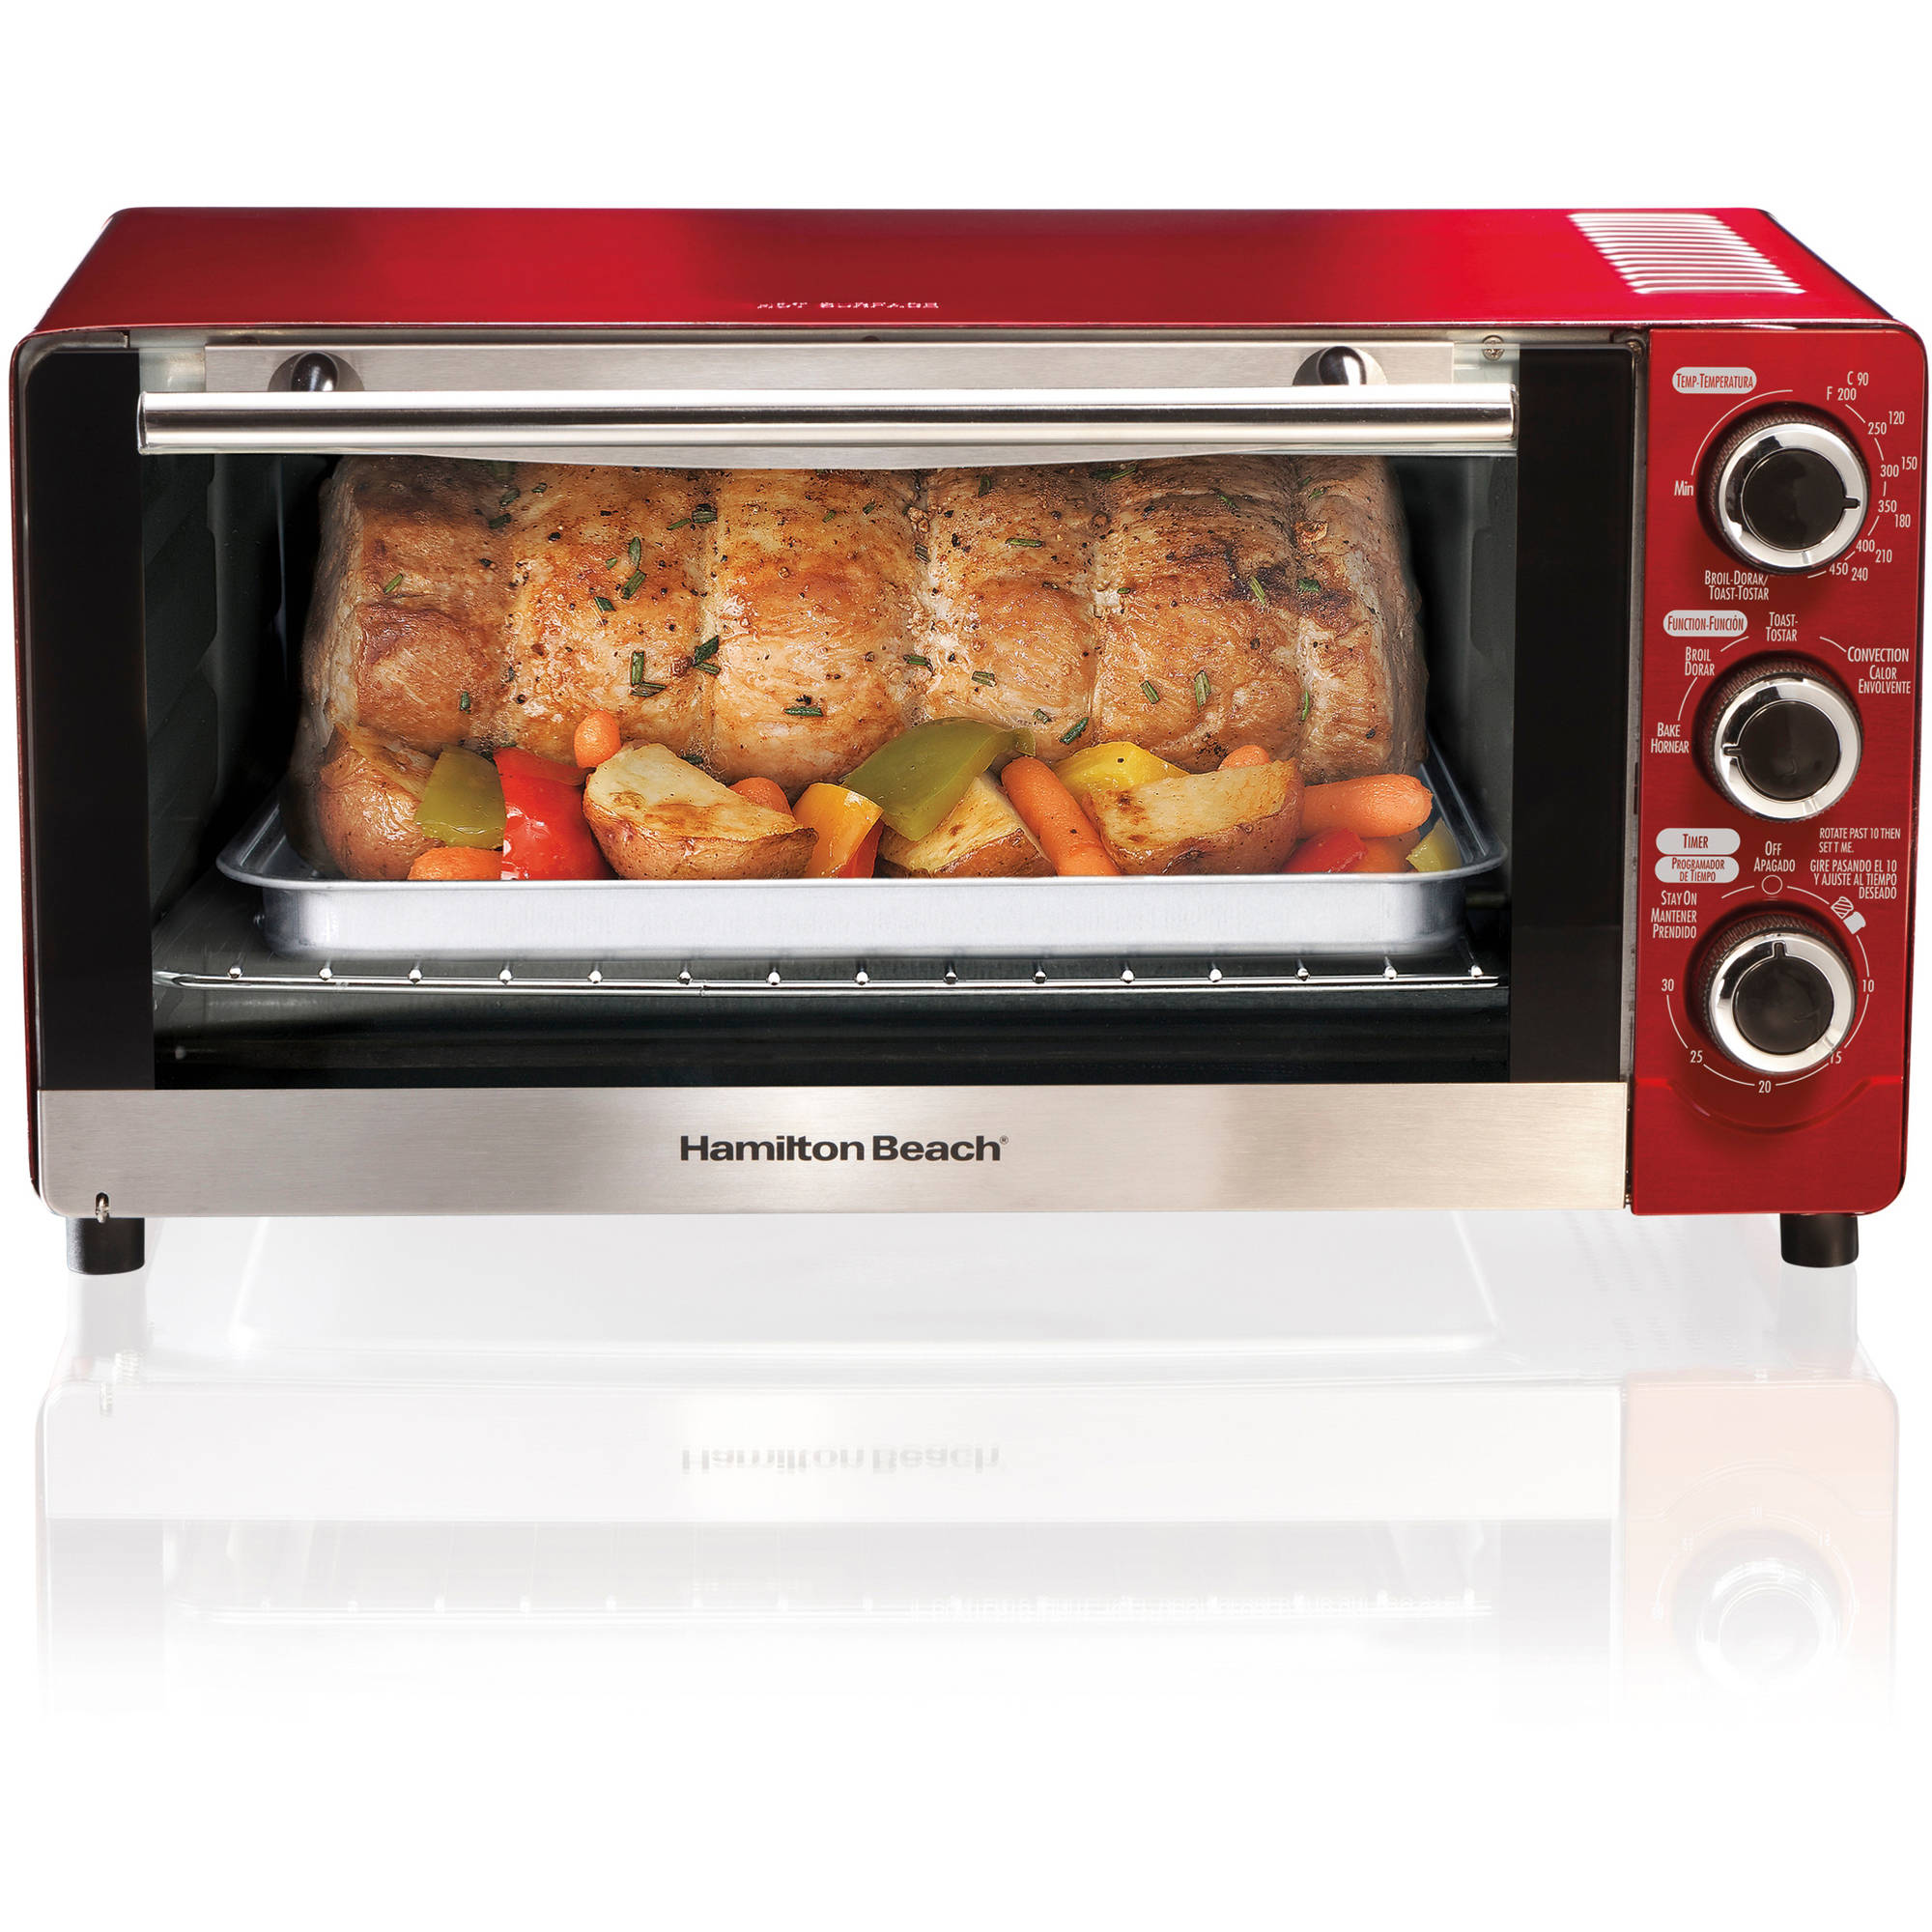 Hamilton Beach 6 Slice Convection Toaster & Broiler Oven | Model# 31806-MX